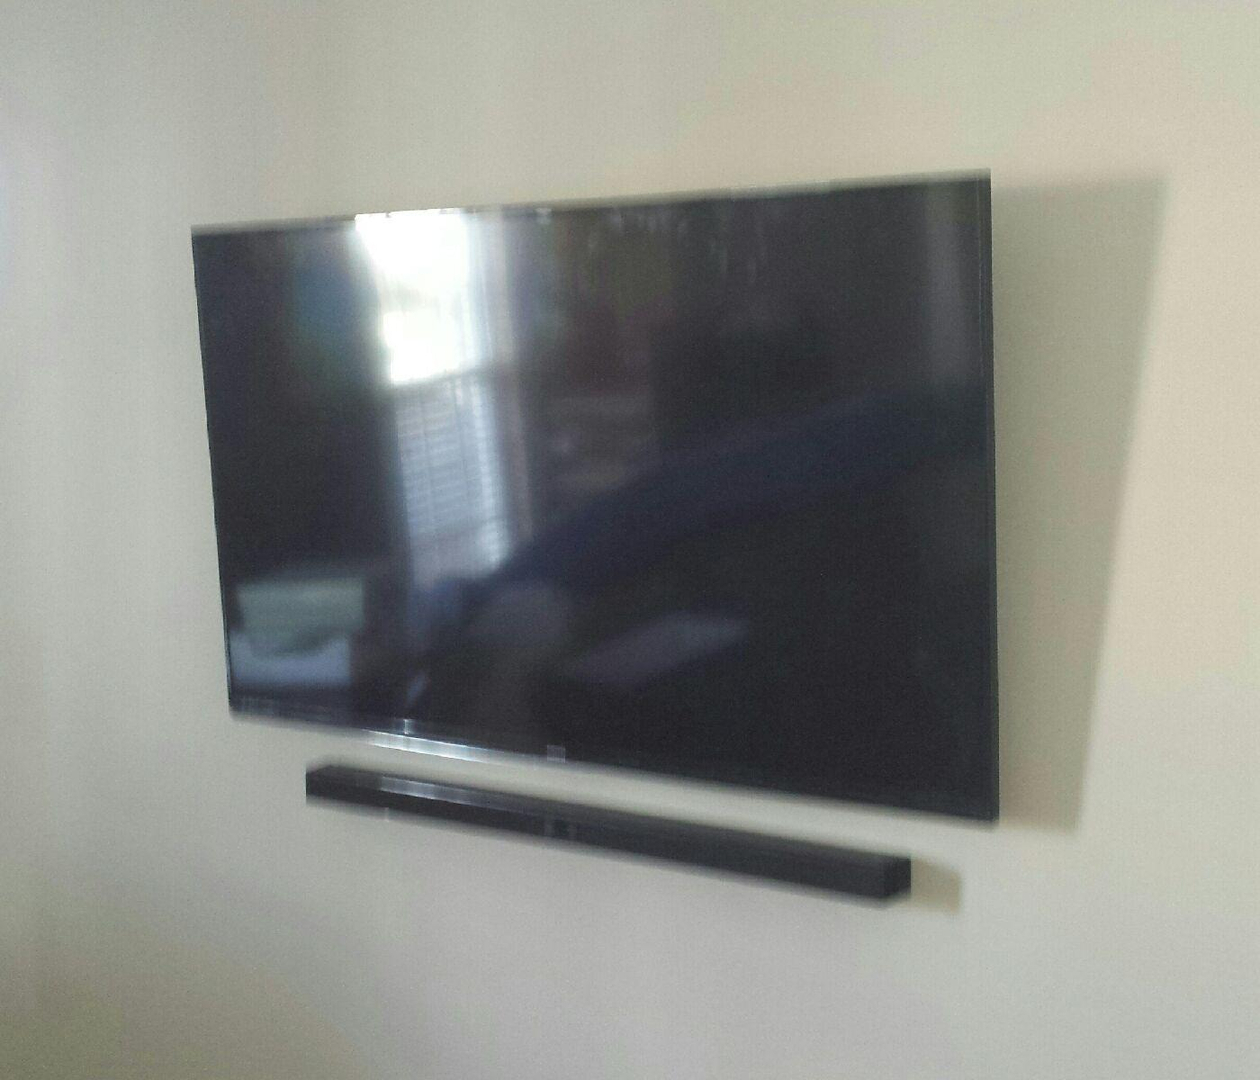 TV Mounting, Audio Visual, Home Automation: Fort Mill, SC, Charlotte ...